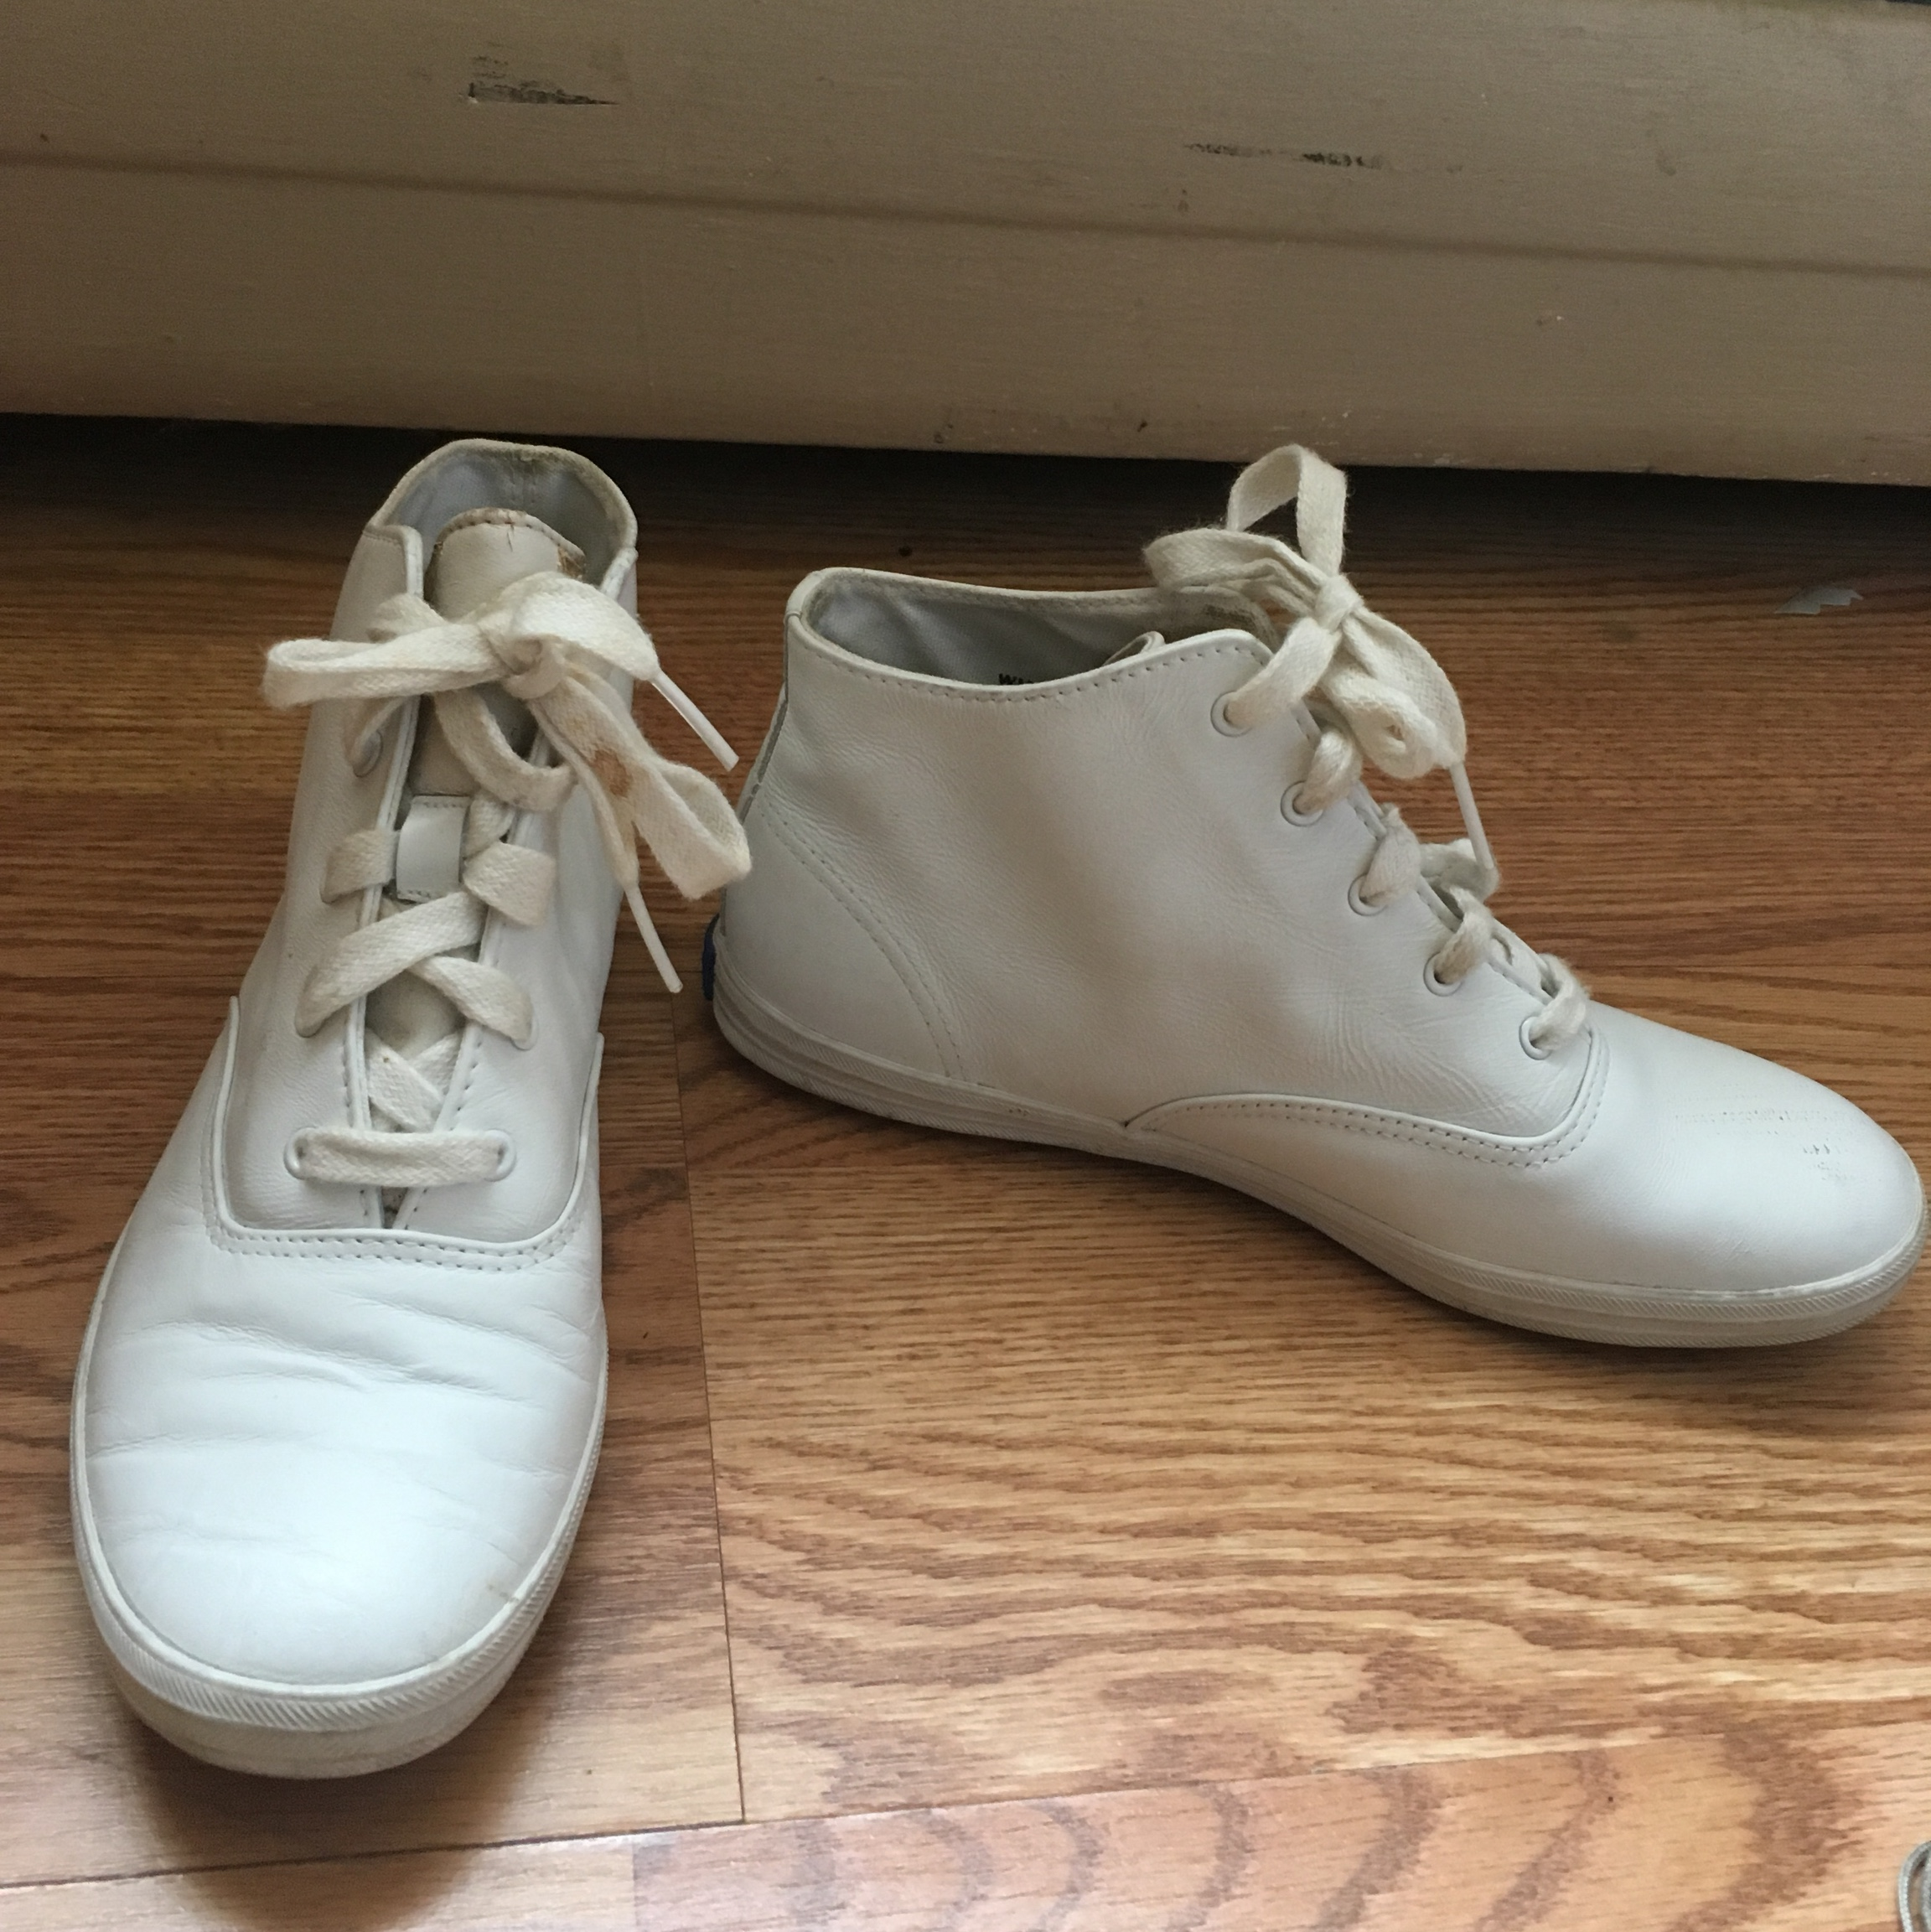 Vintage white leather high-top keds